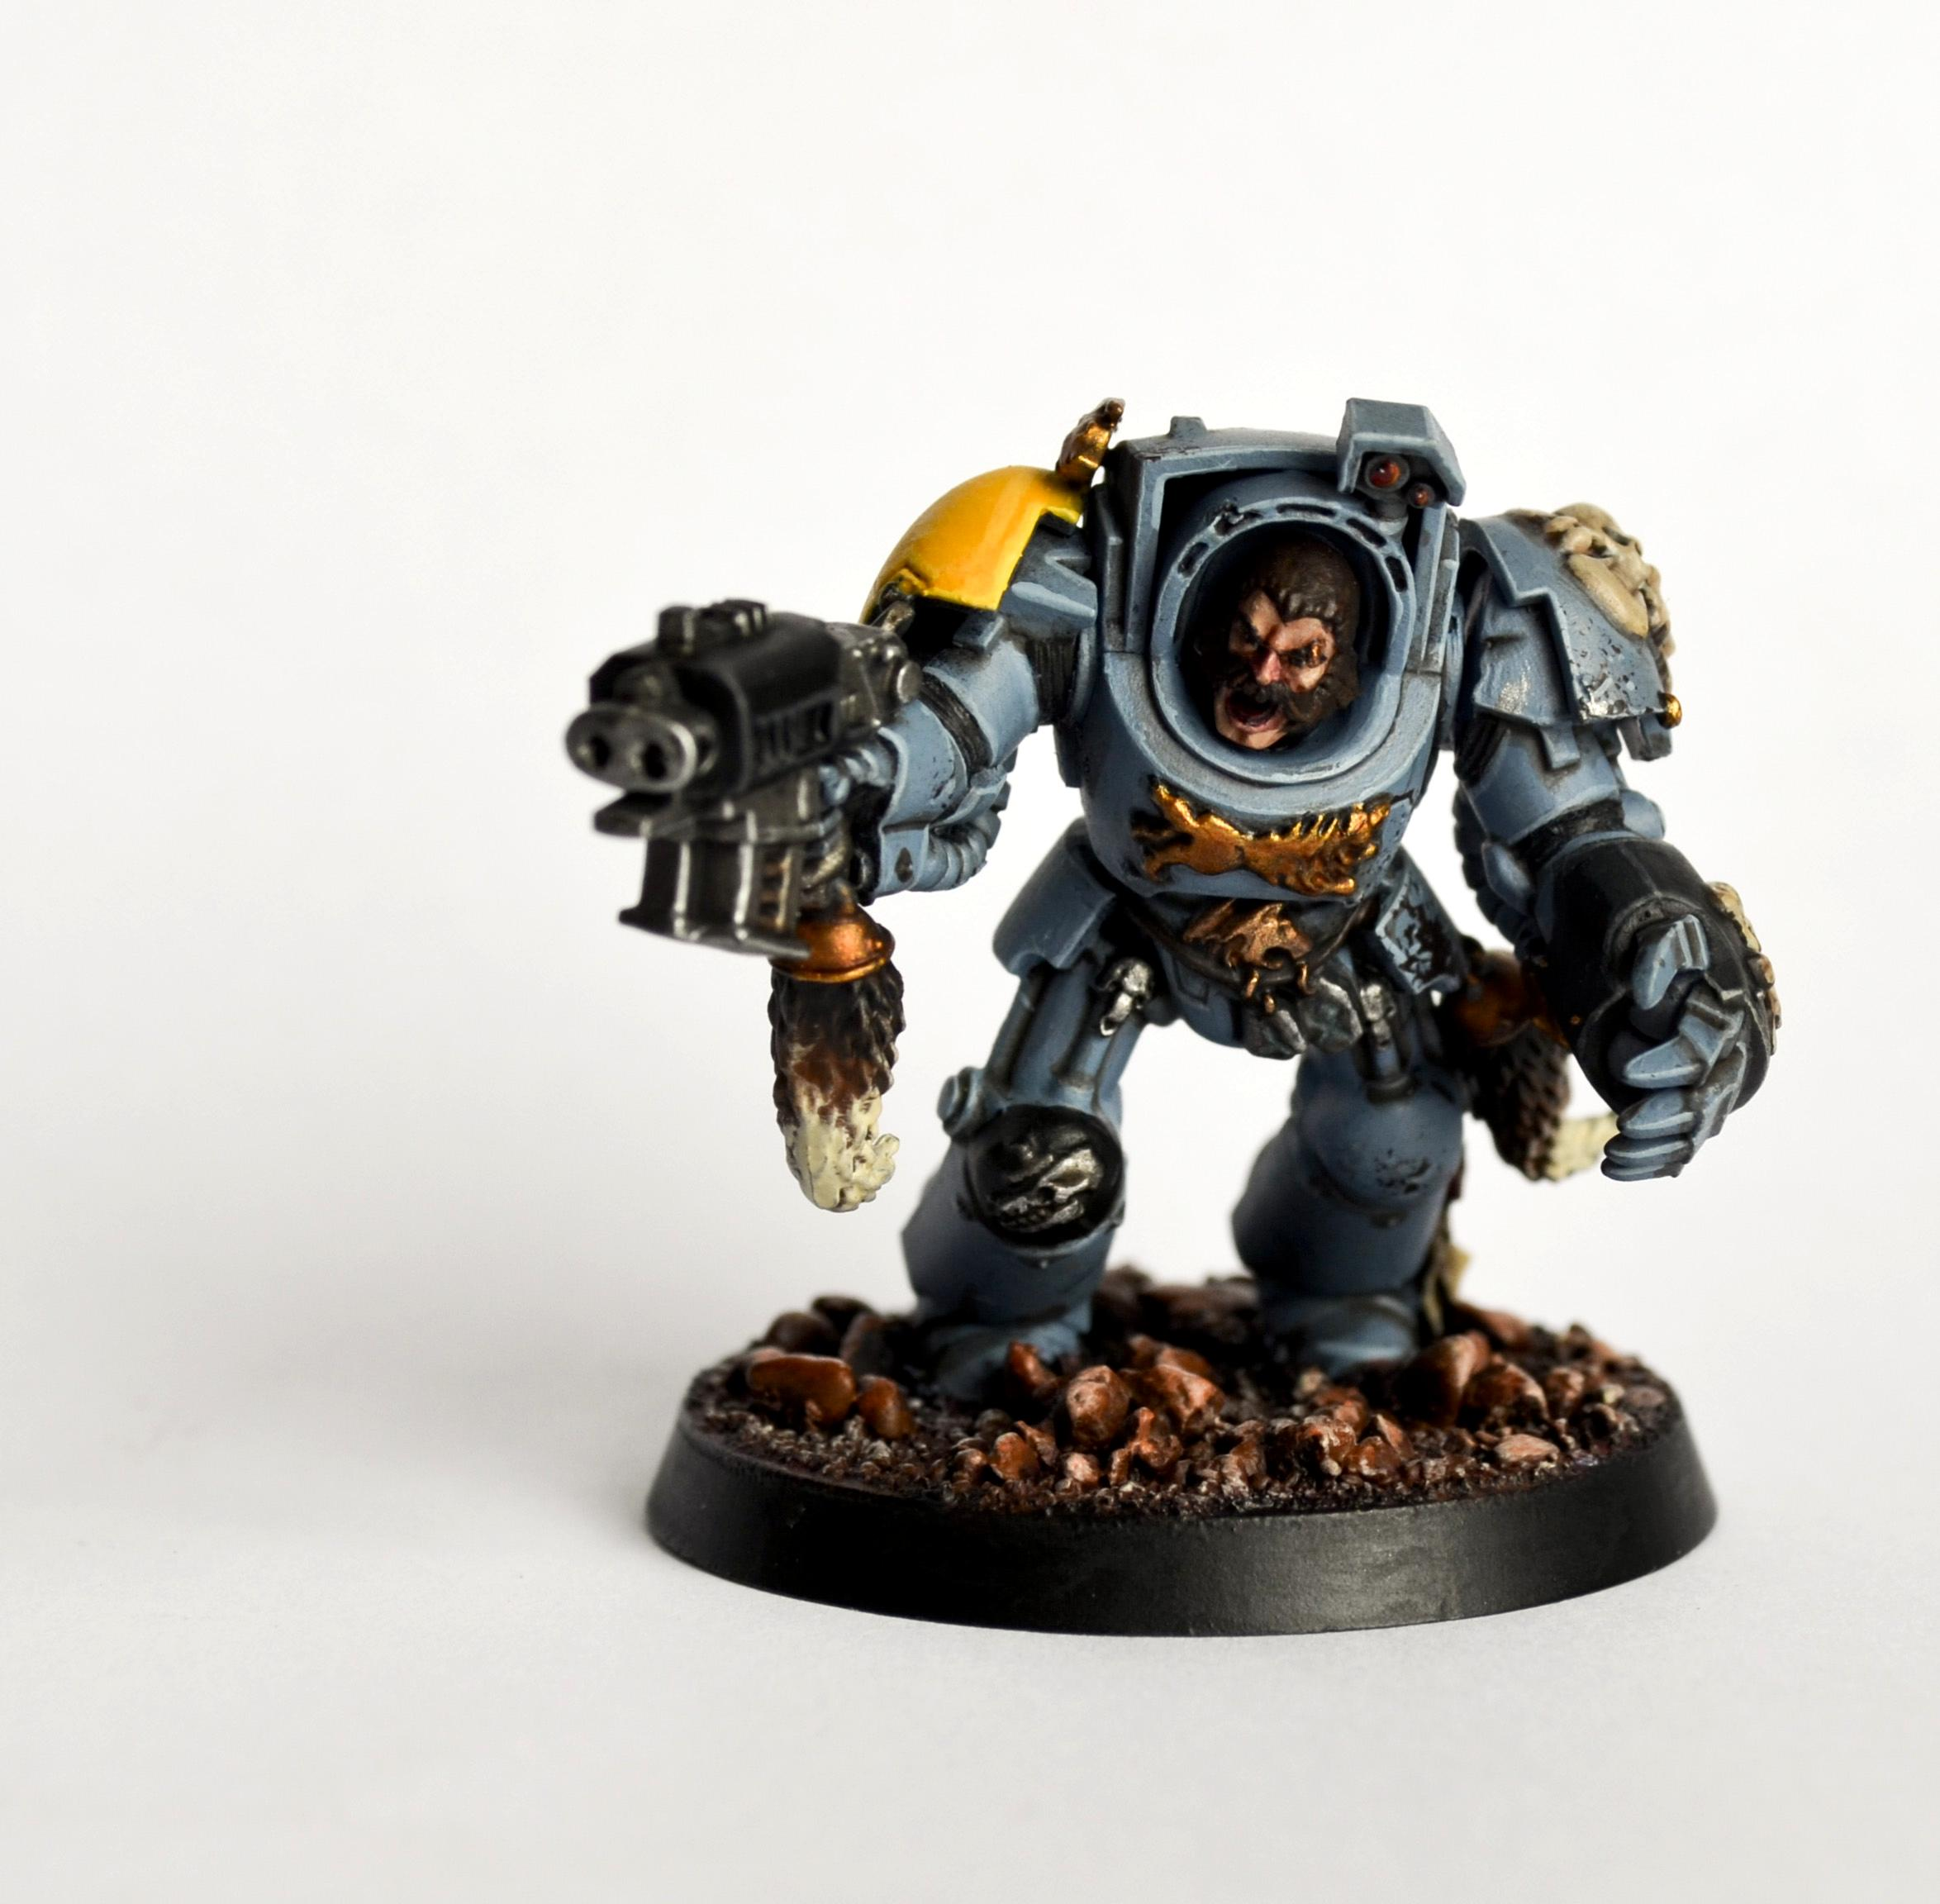 Armor, Head, Magnet, Power Fist, Space Wolves, Stormbolter, Terminator Armor, Wolf, Wolf Guard, Yellow